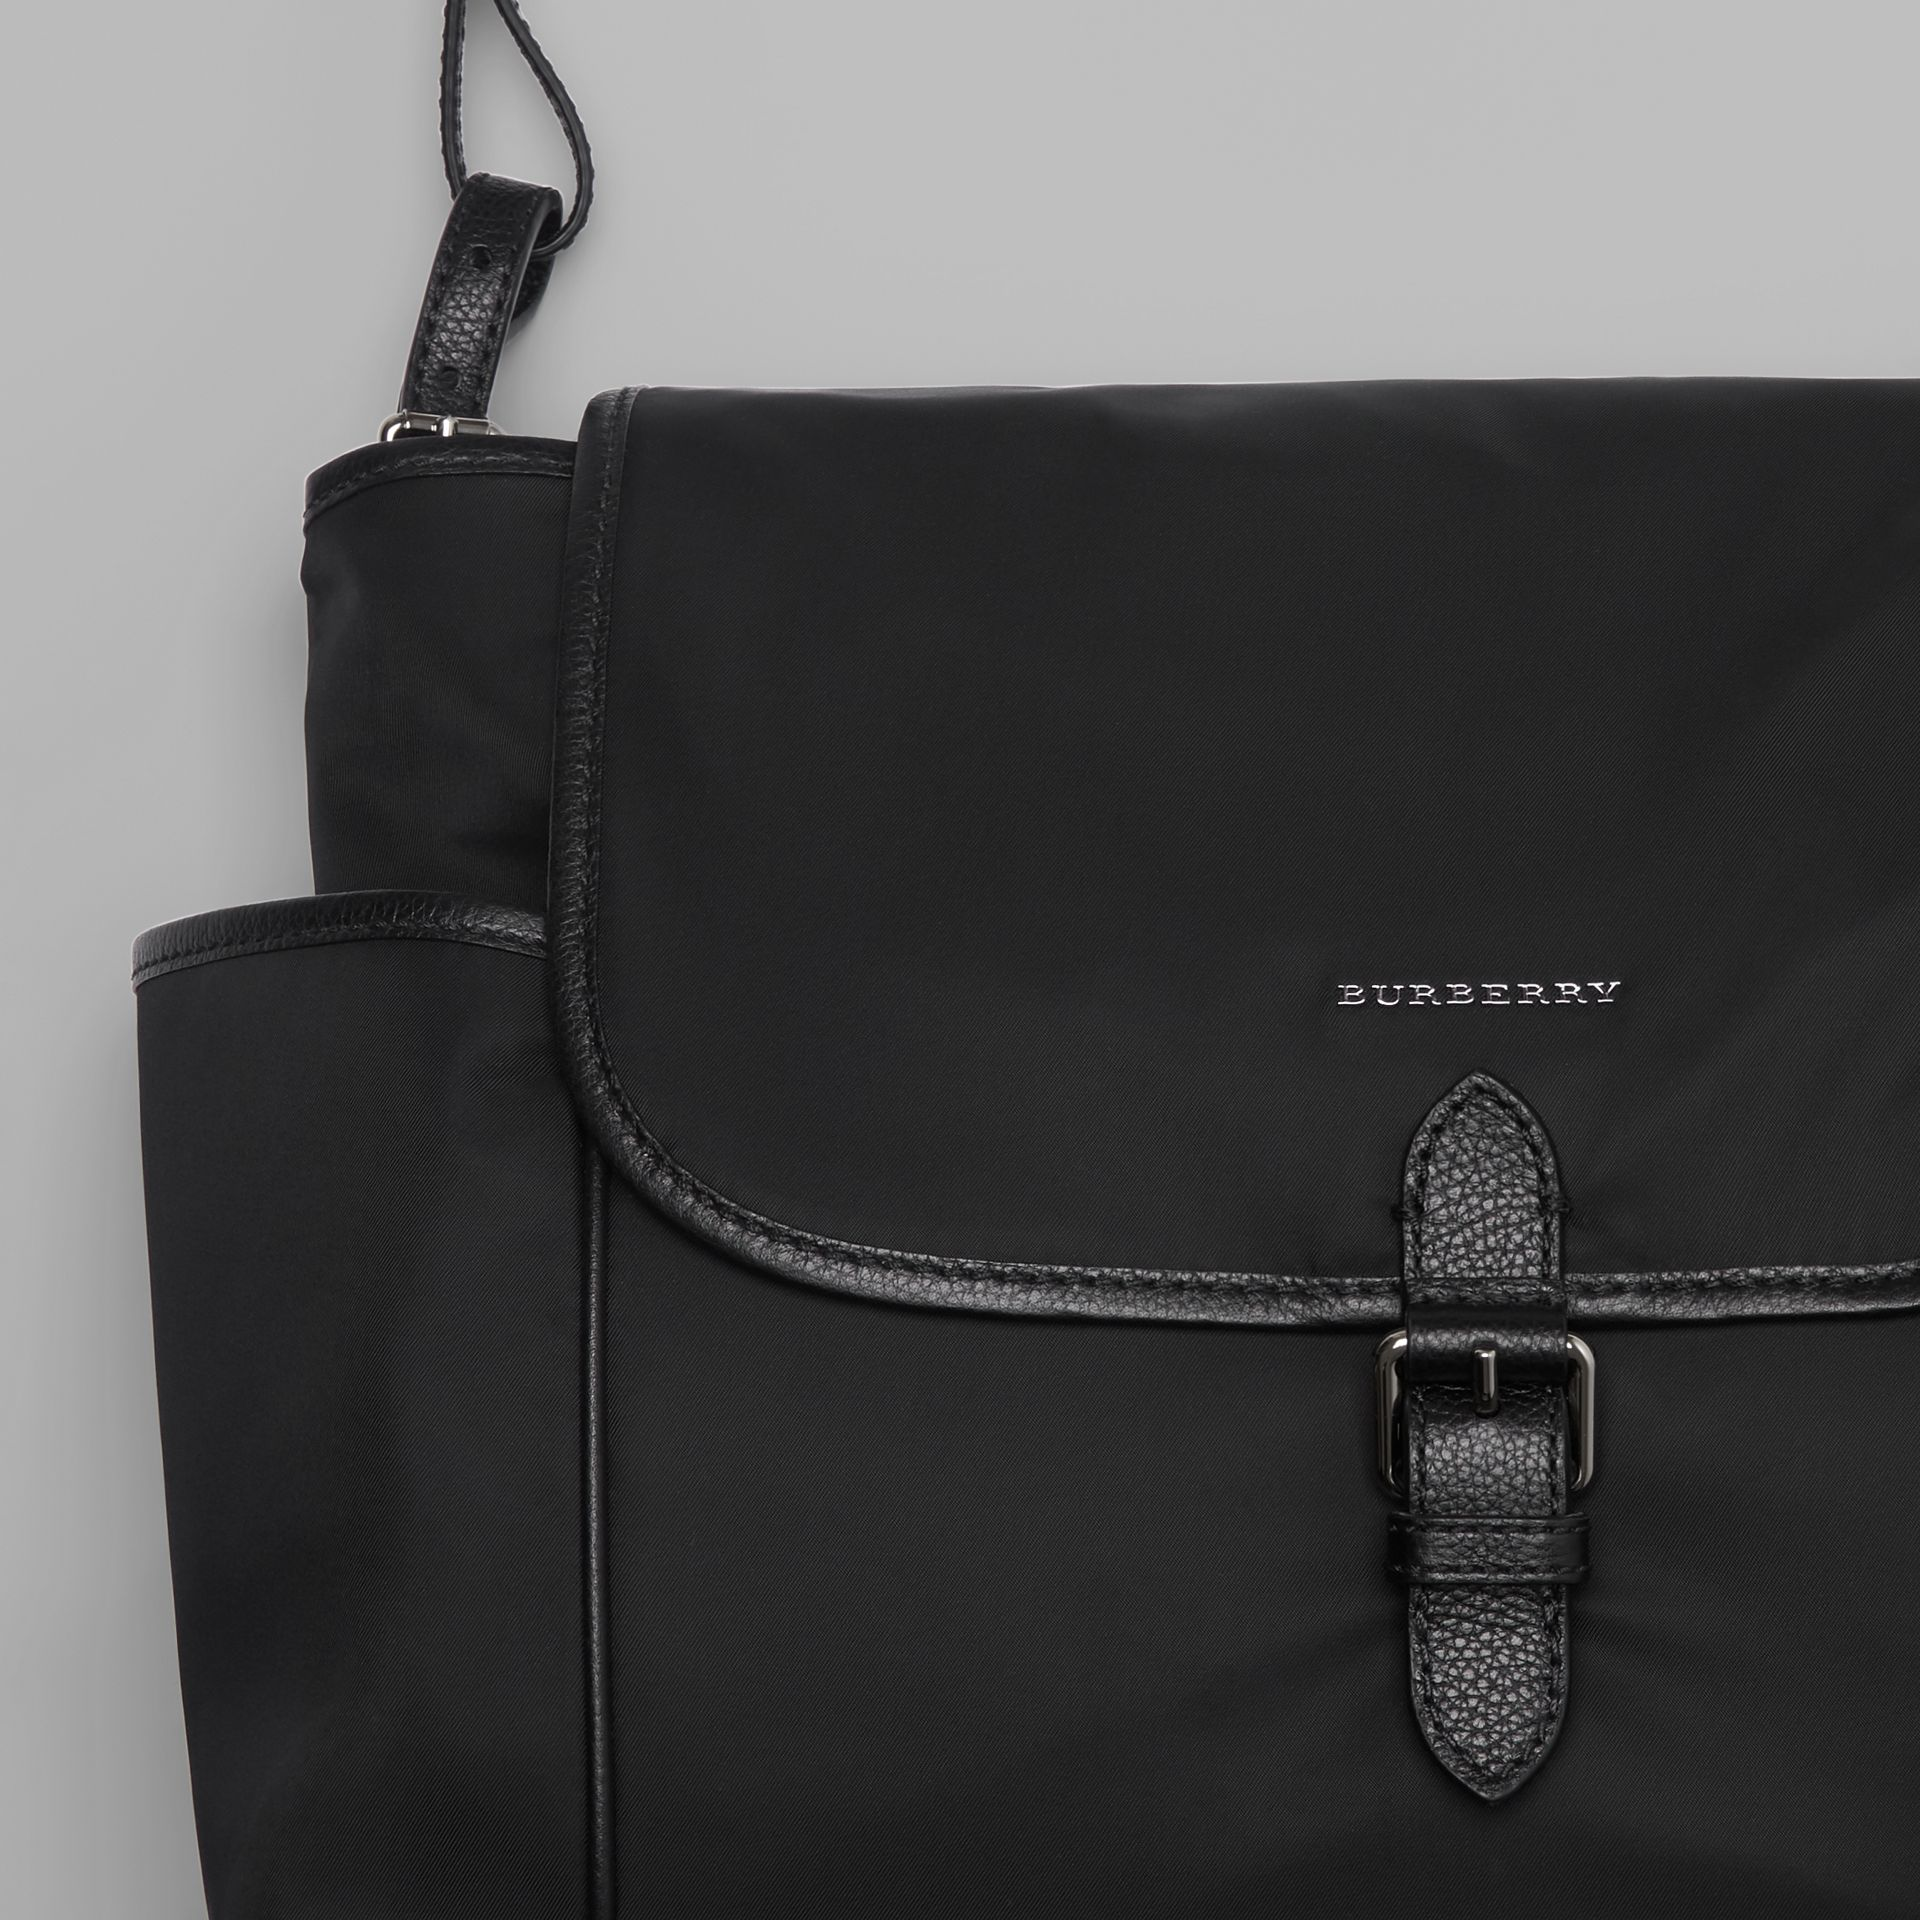 Leather Trim Baby Changing Shoulder Bag in Black - Children | Burberry United Kingdom - gallery image 1